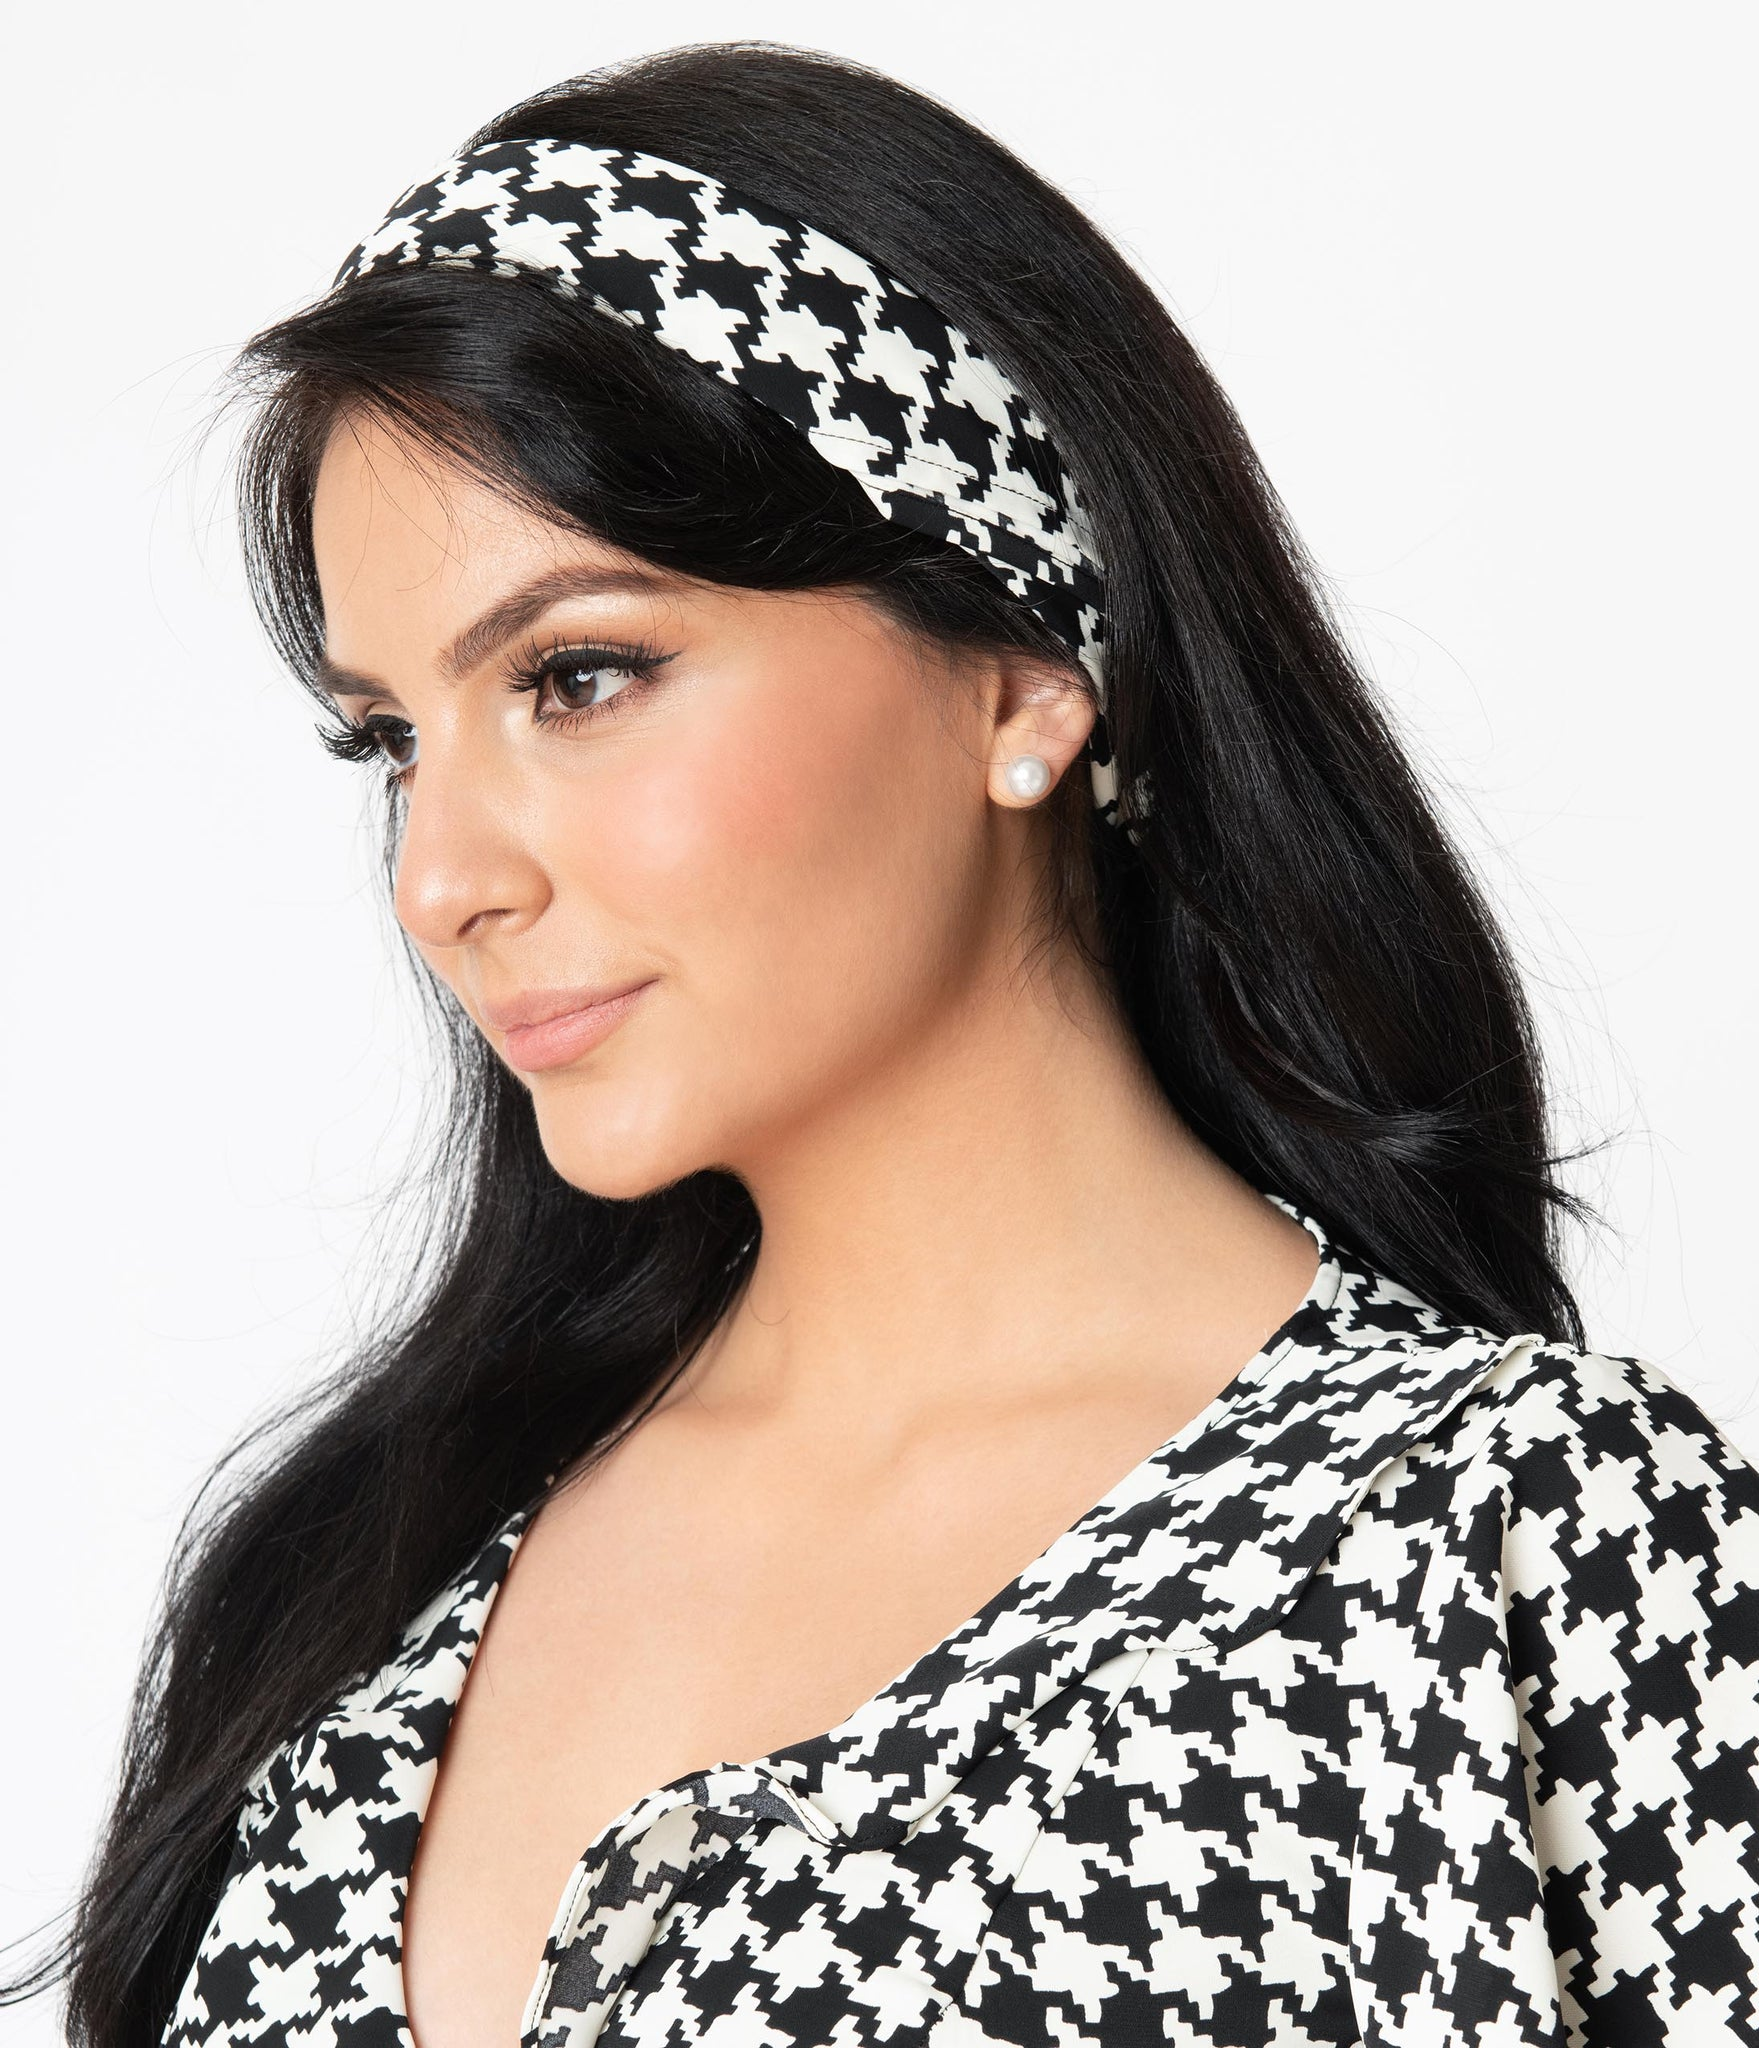 Unique Vintage Pin-Up Black & White Houndstooth Hair Scarf